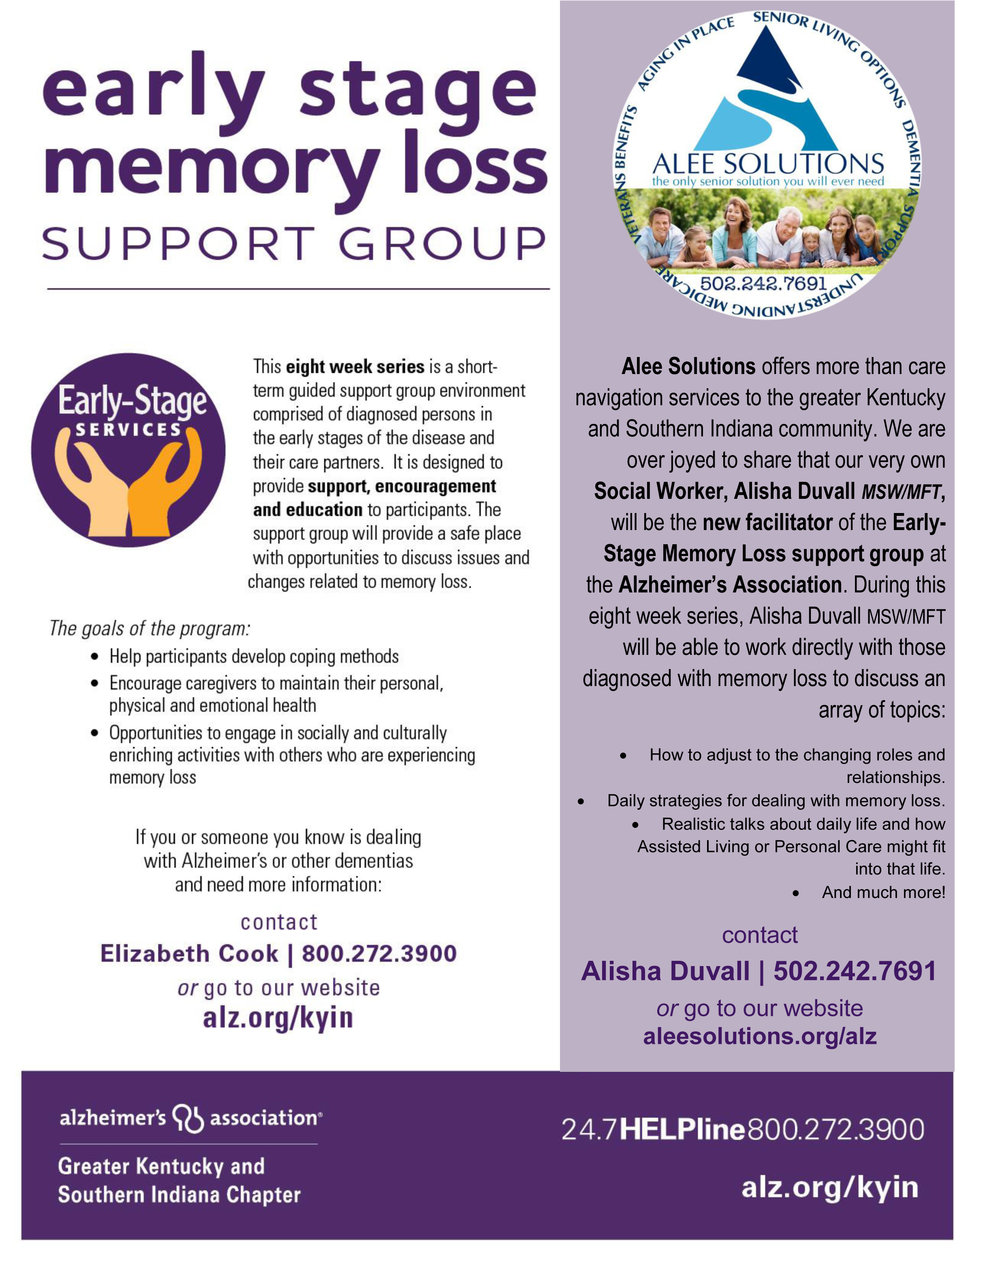 Early.Stage.Alz.Support.Grp.2019.Brochure 1.jpg